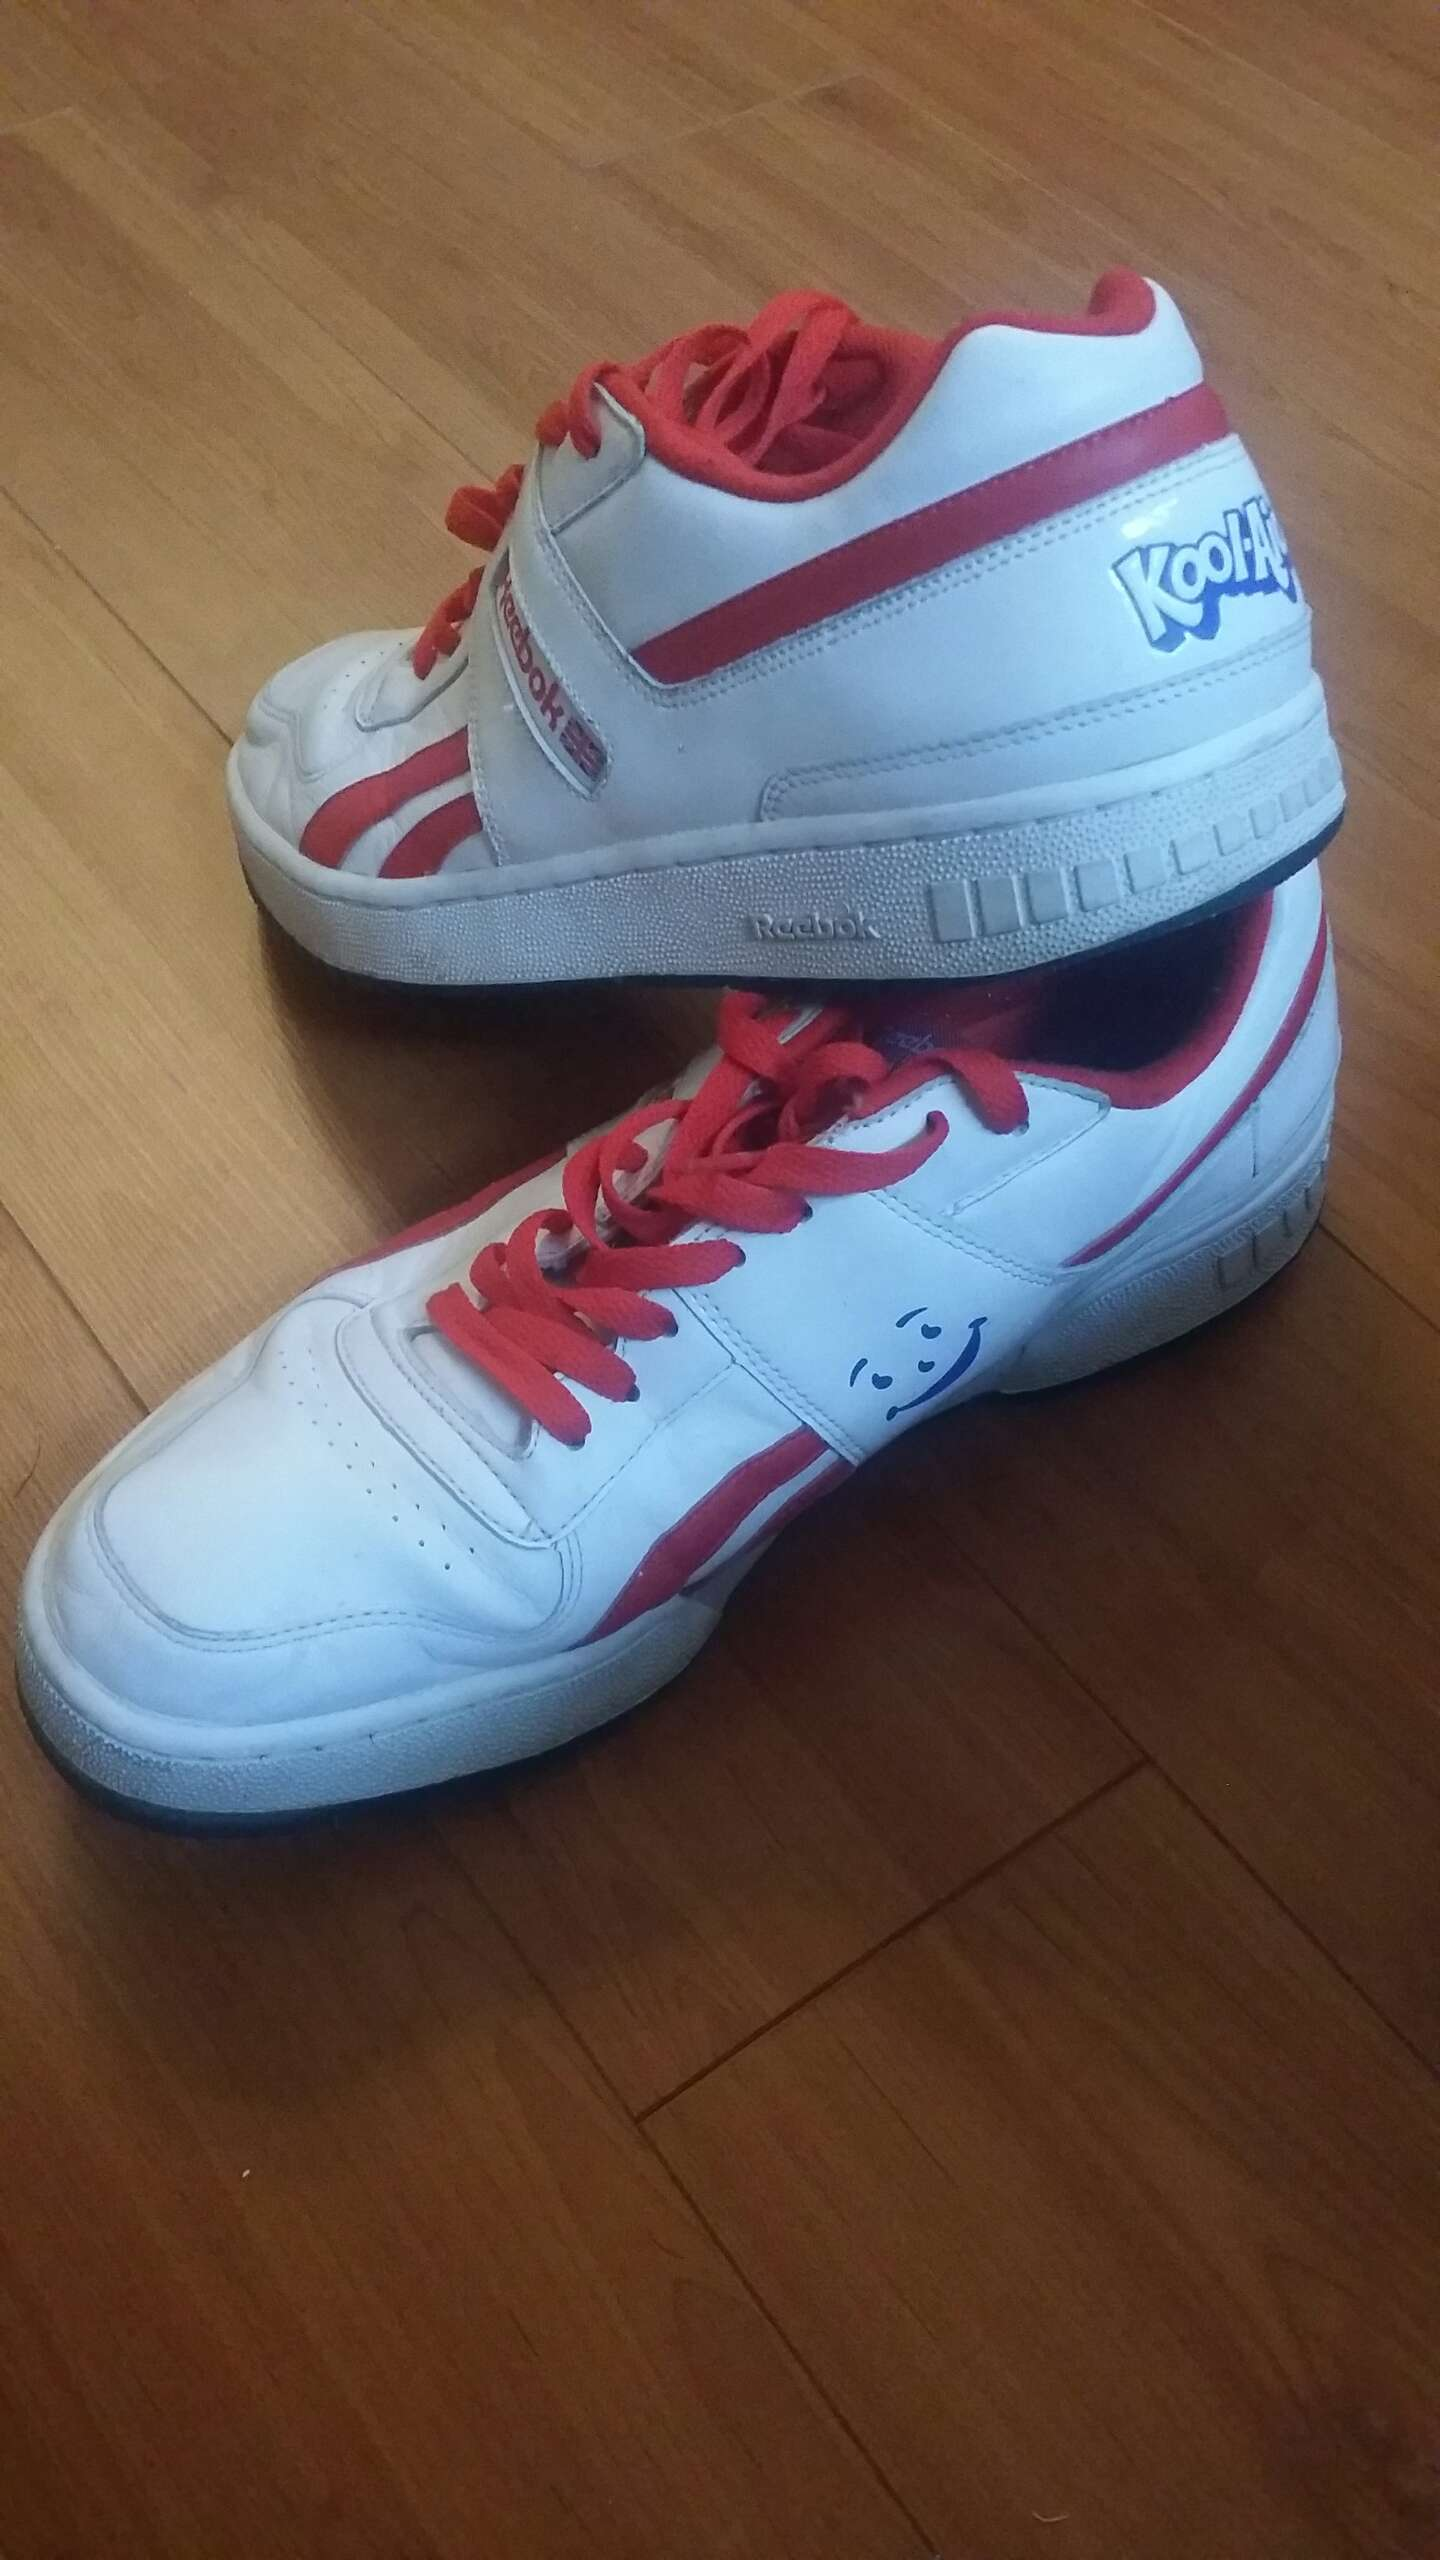 Rare Mens Reebok Kool aid Sneakers for sale in Winter Springs a40d4a231